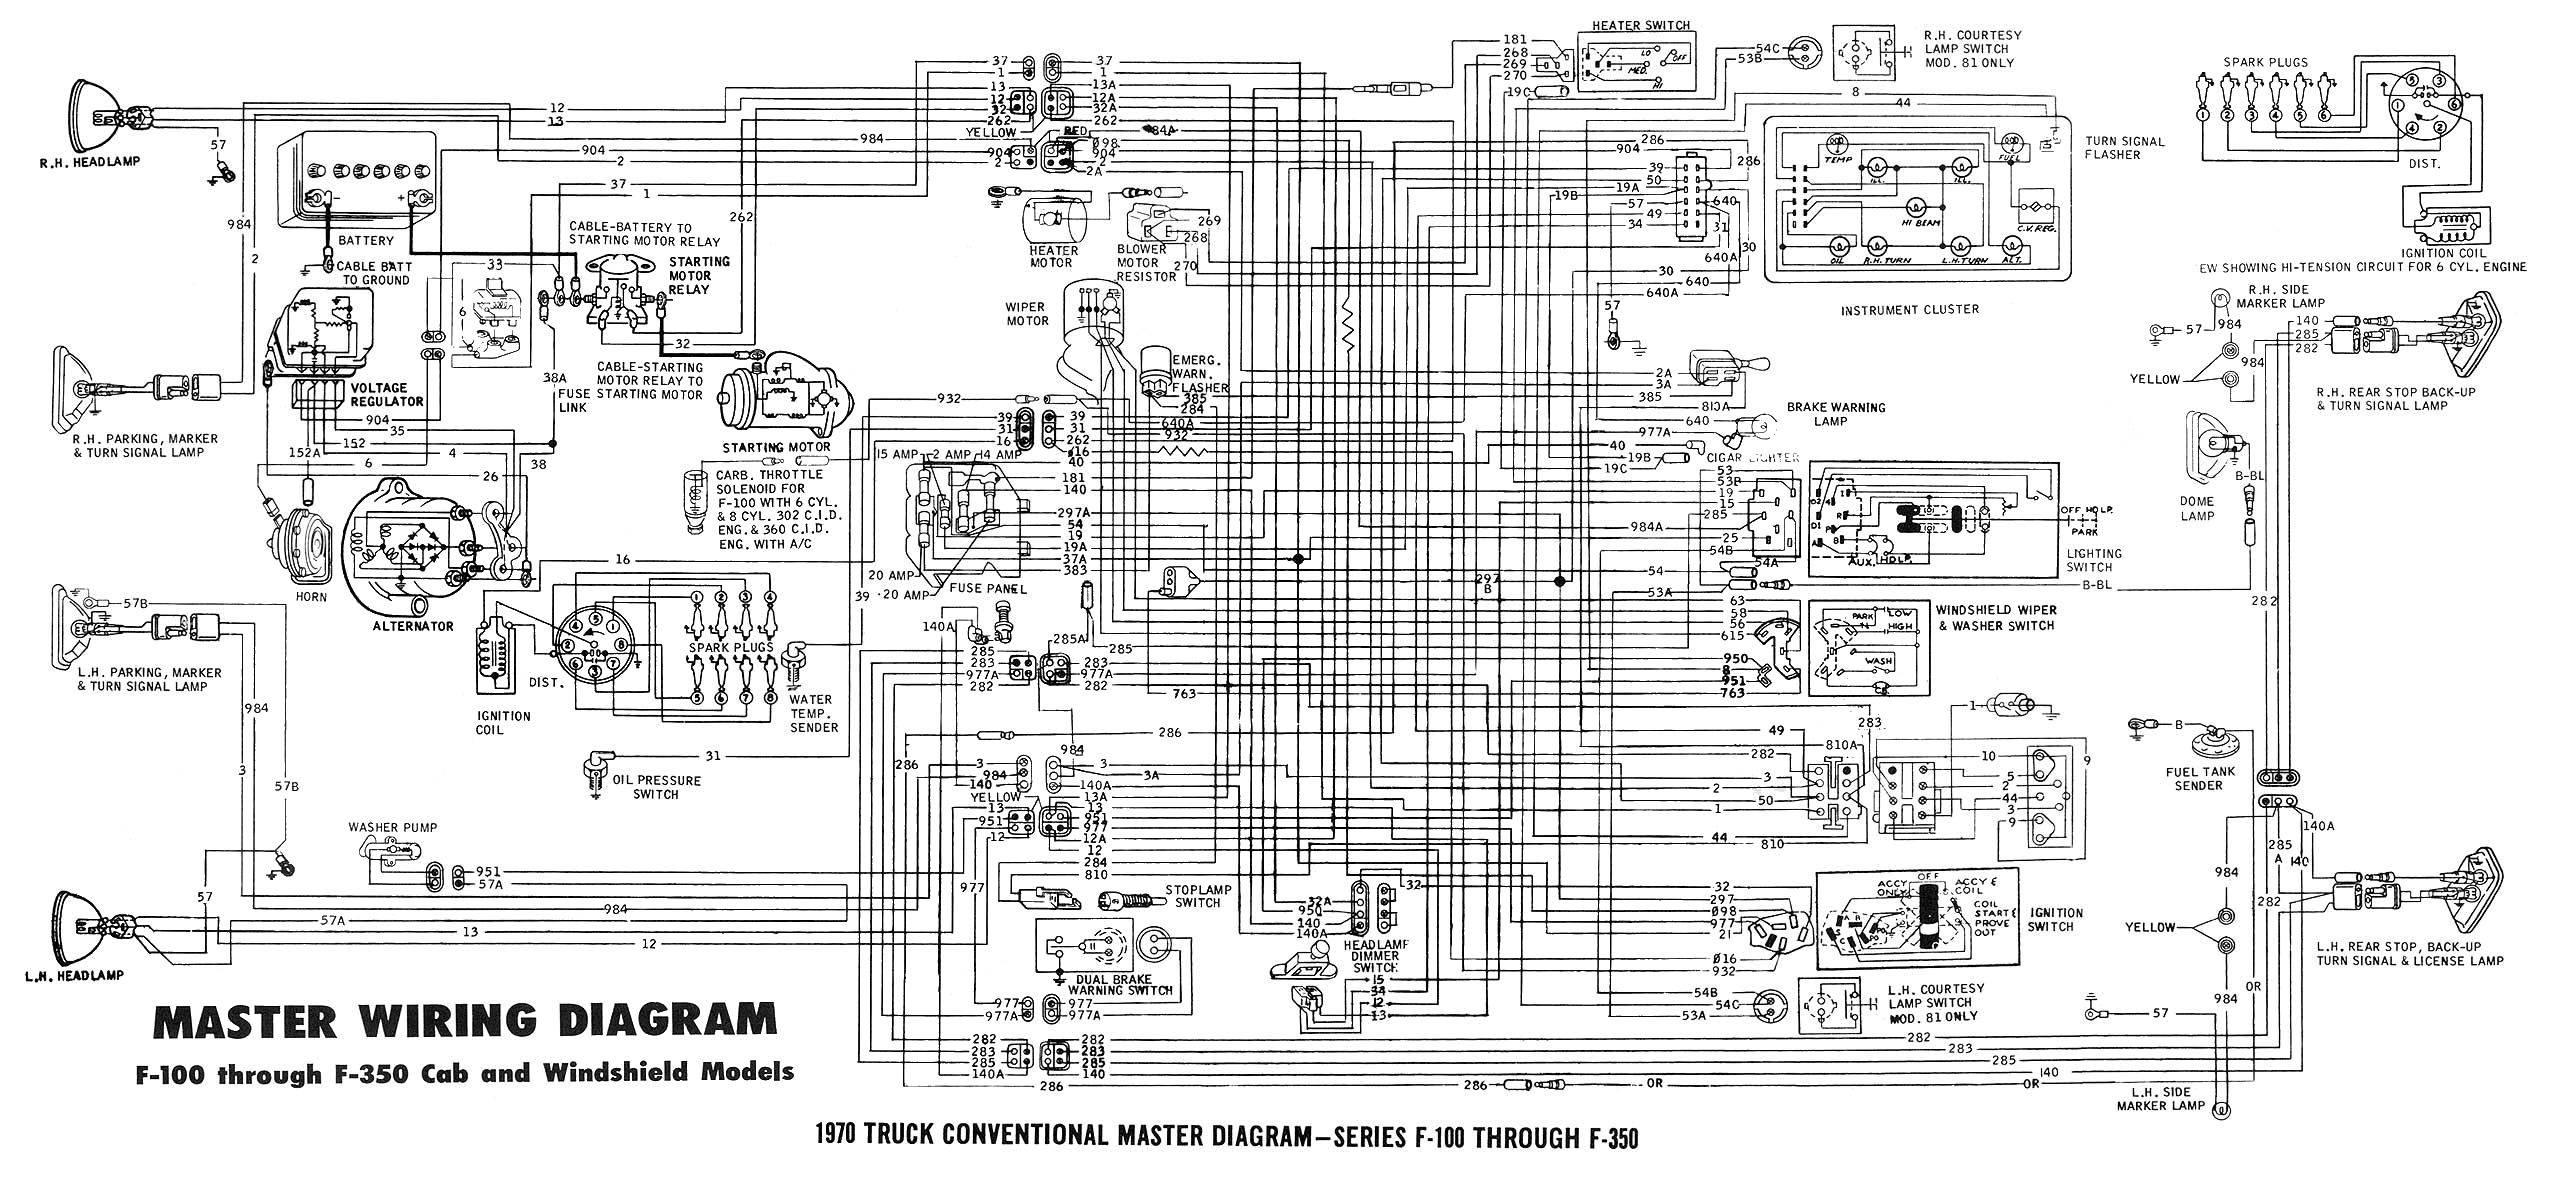 ford factory wiring diagrams ford f150 wiring diagram ford wiring diagrams